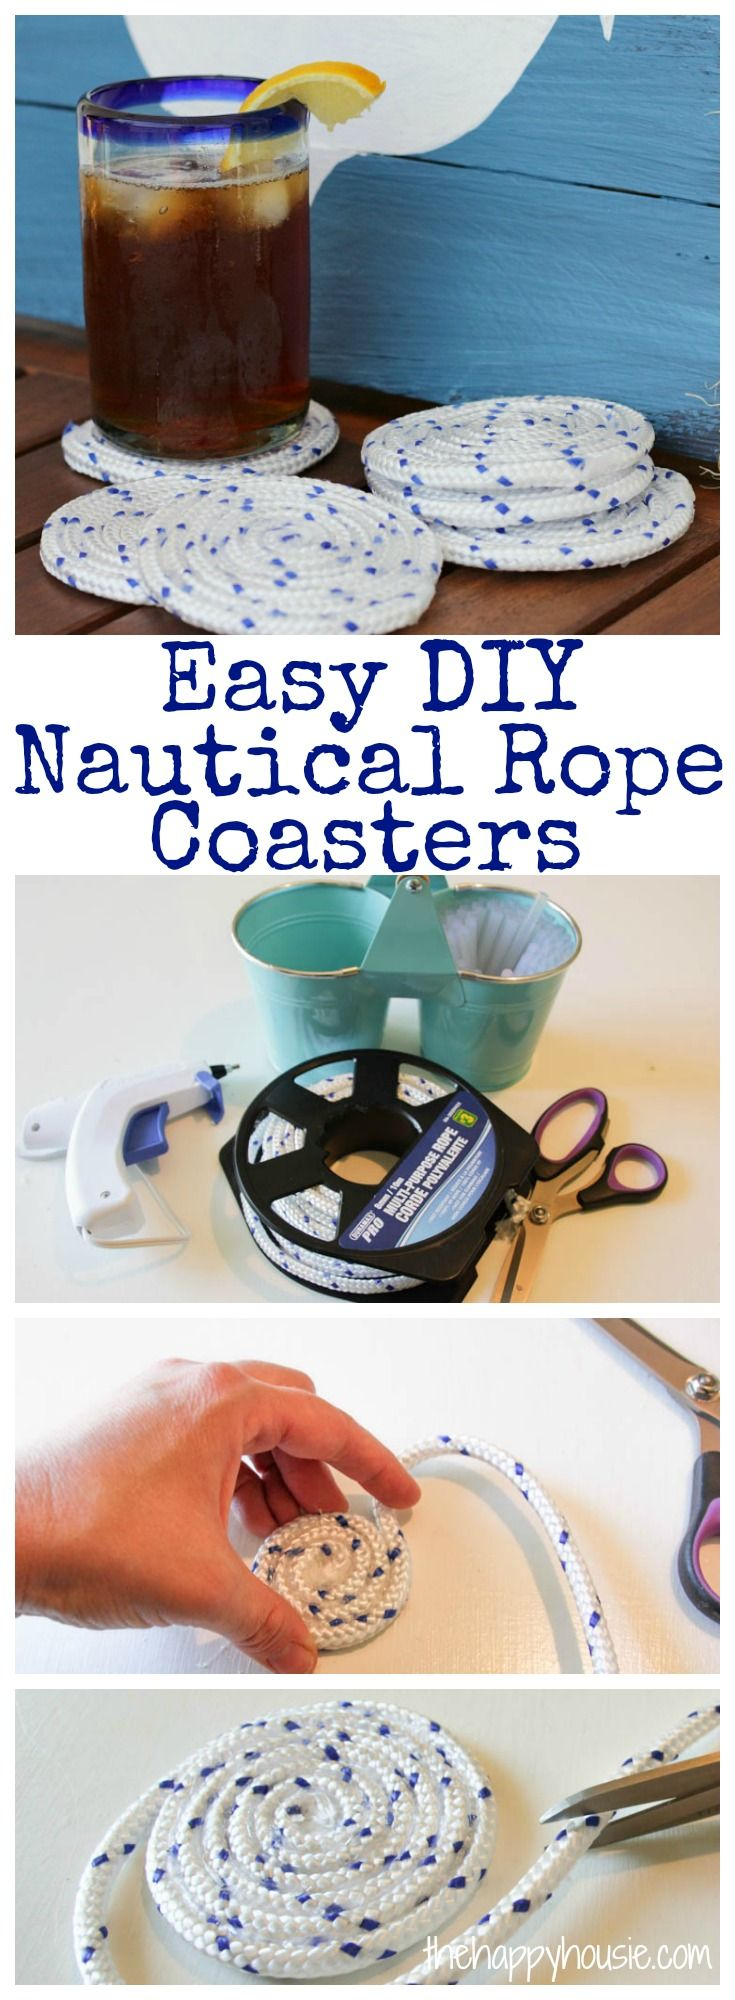 Nautical crafts to make - Quick Easy Diy Nautical Rope Outdoor Coasters